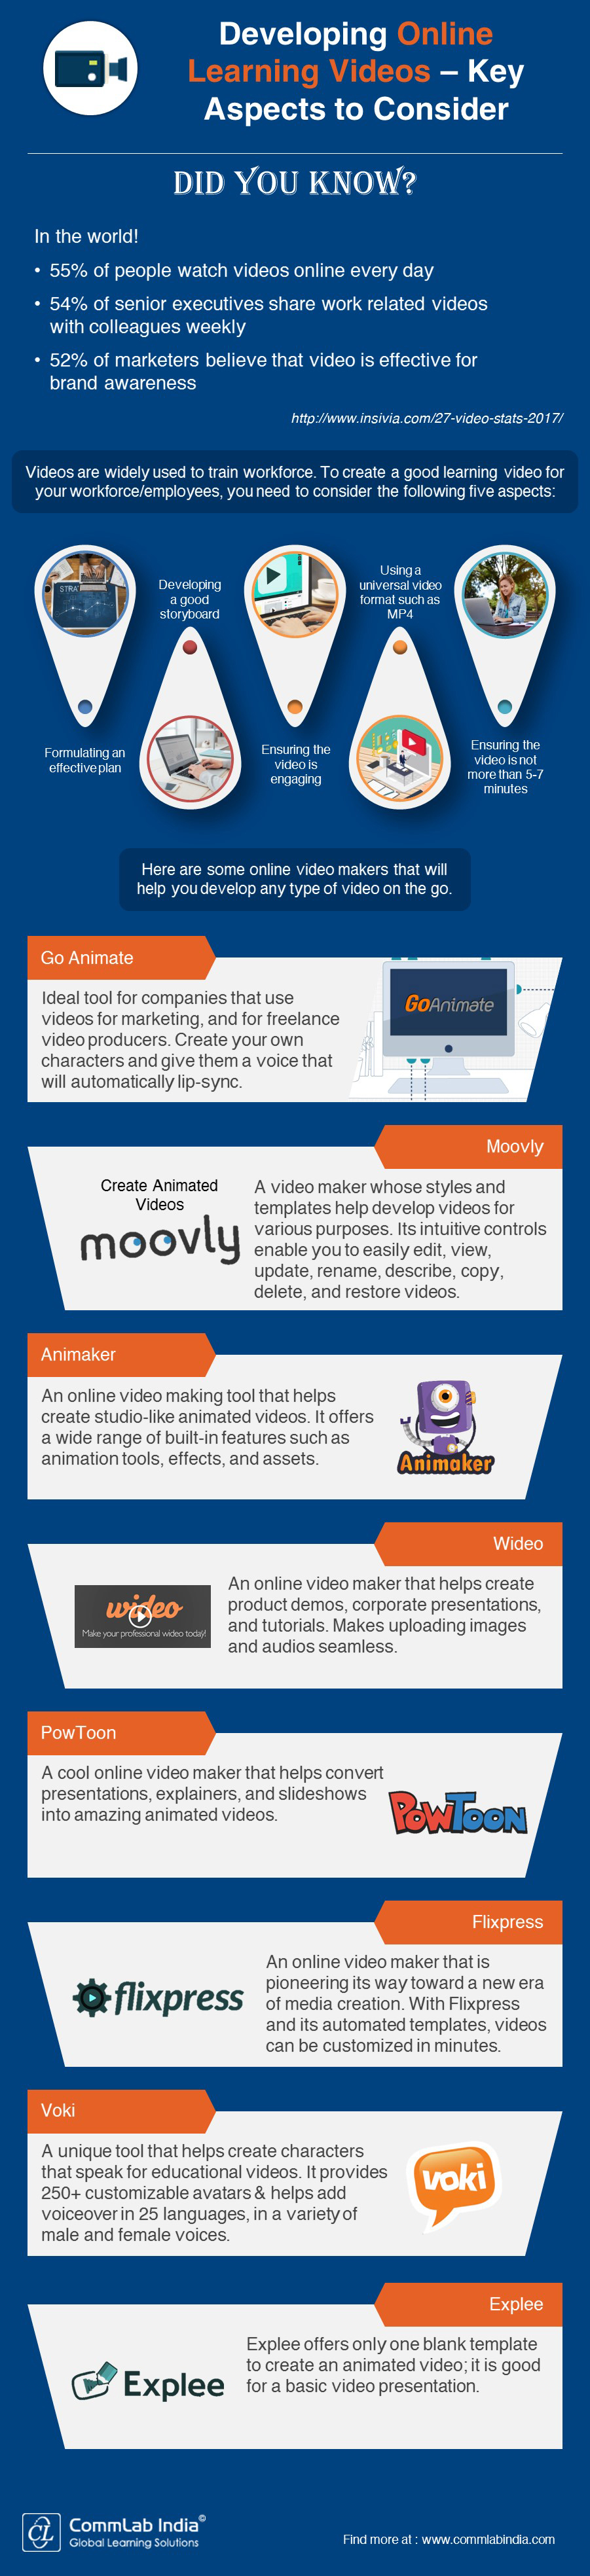 Developing Online Learning Videos – Key Aspects to Consider [Infographic]